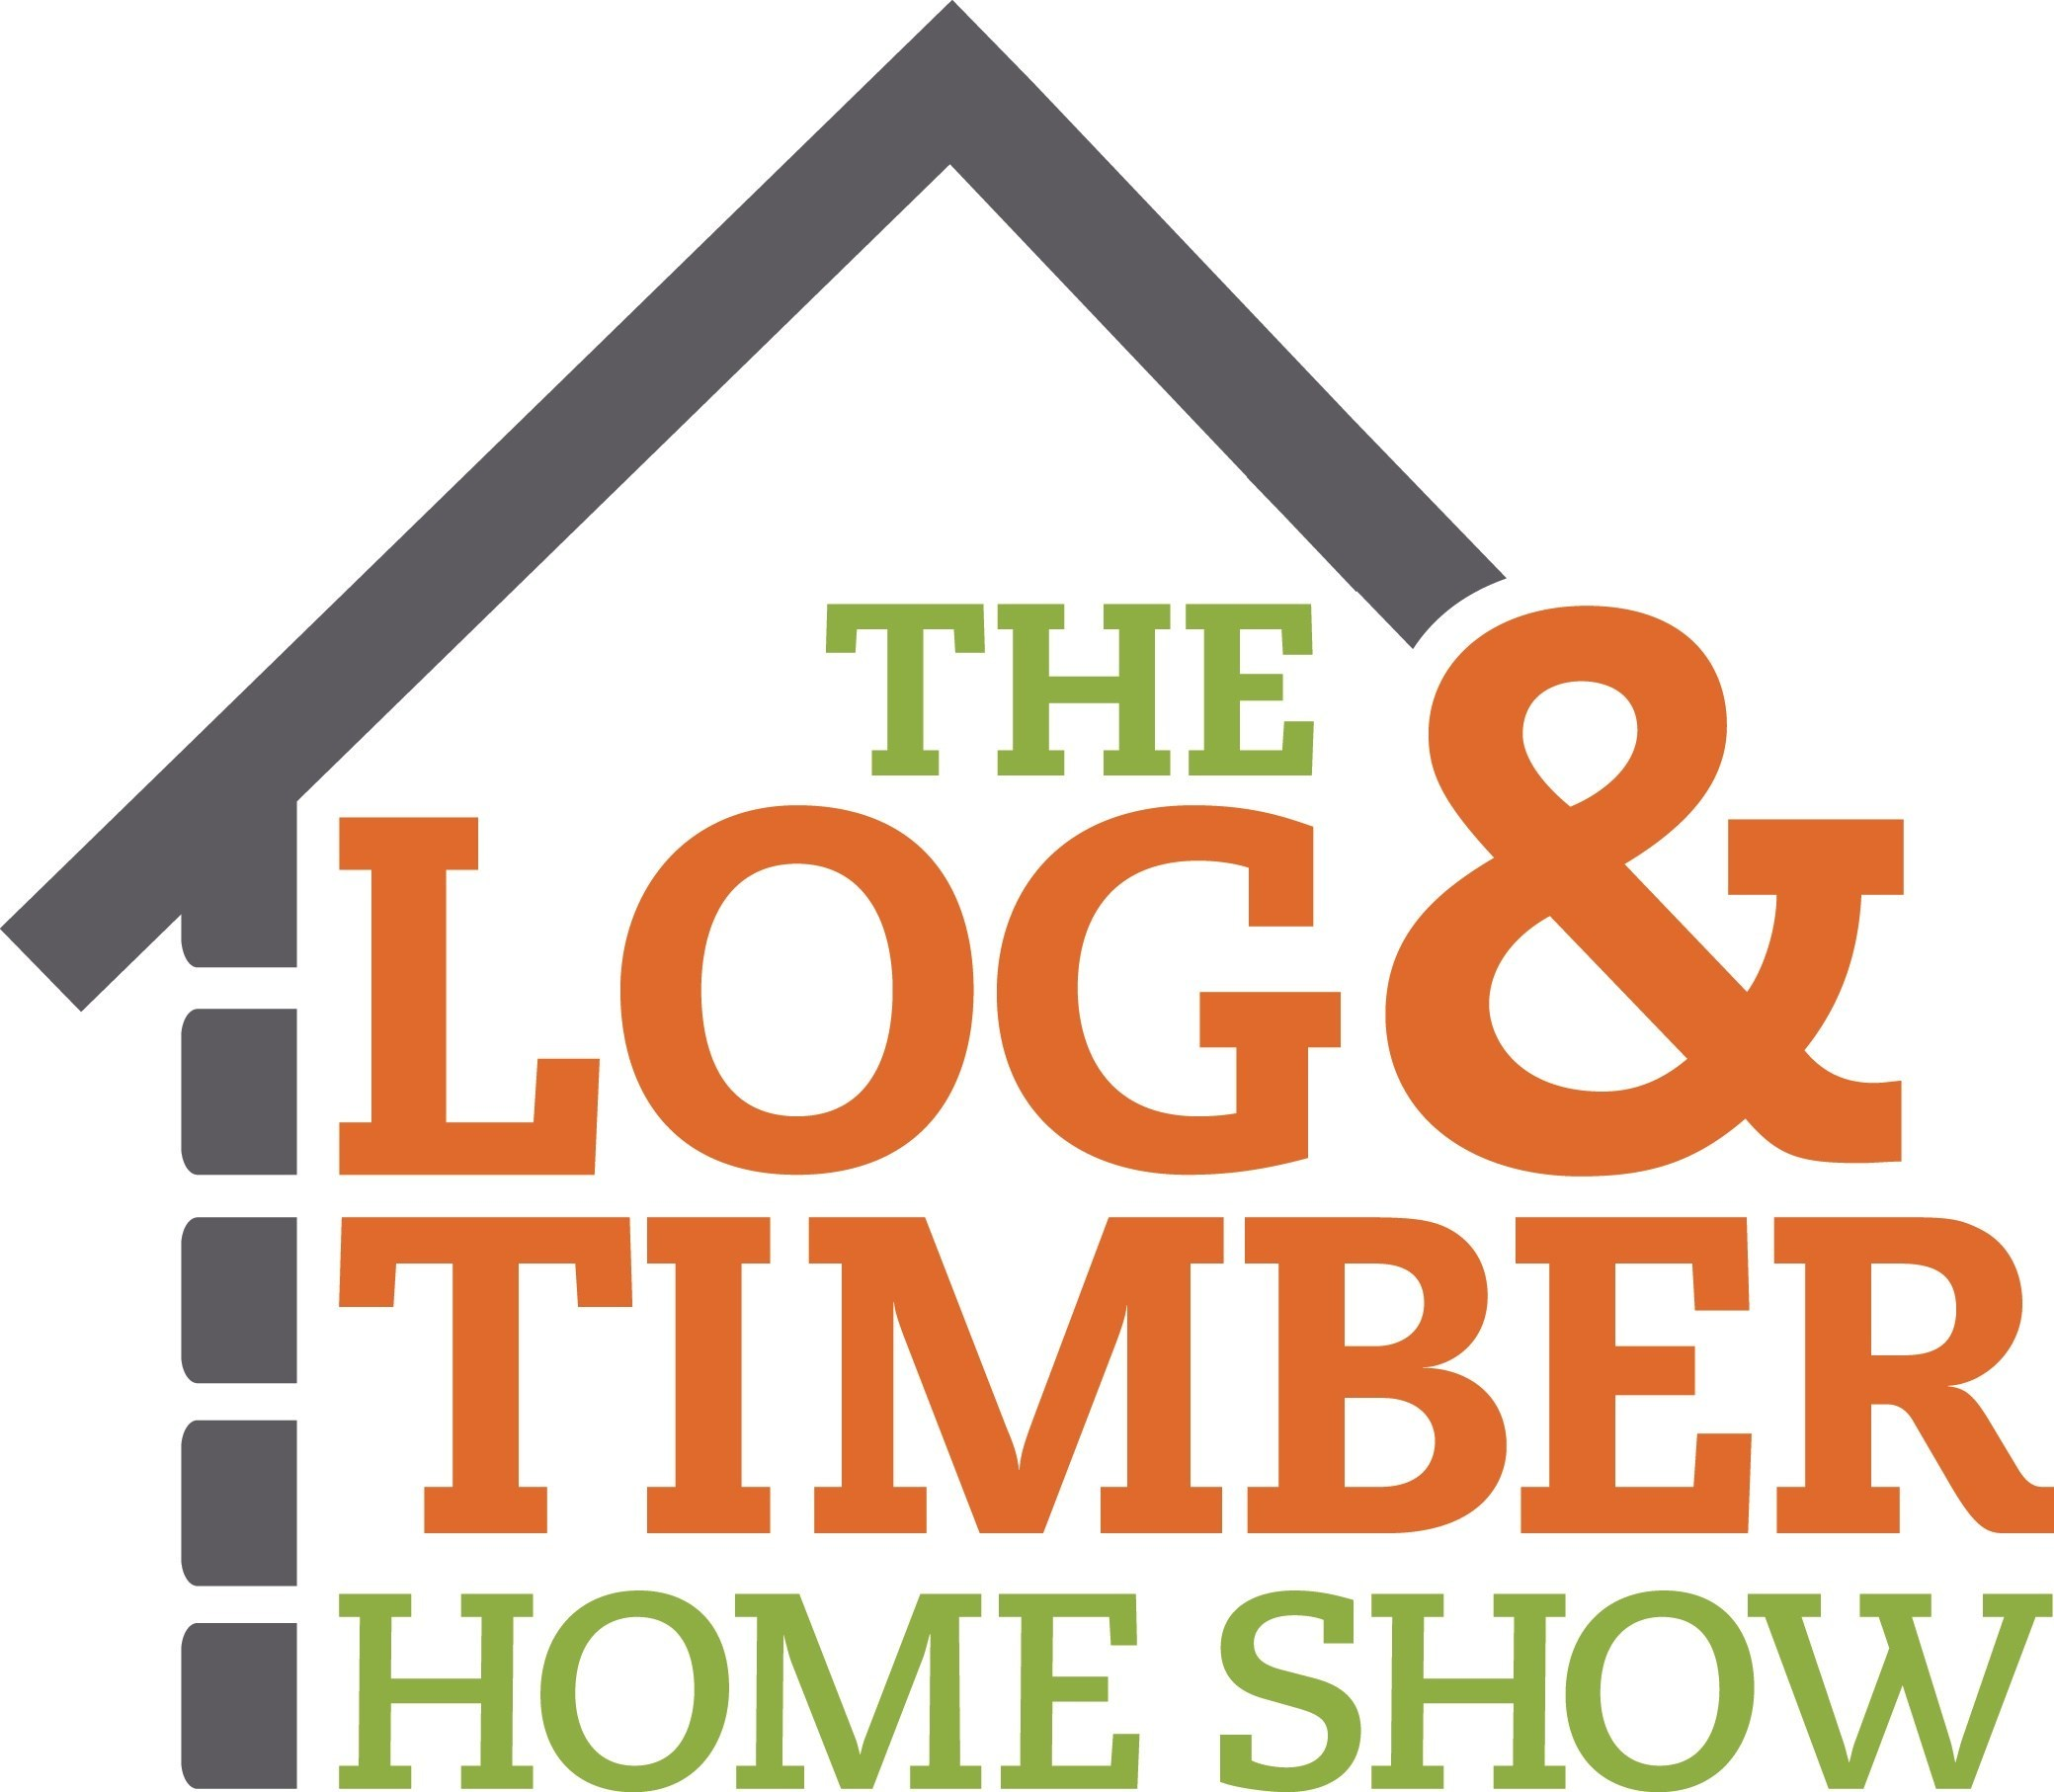 The Log & Timber Home Show comes to Nashville, TN January 19-21, 2018